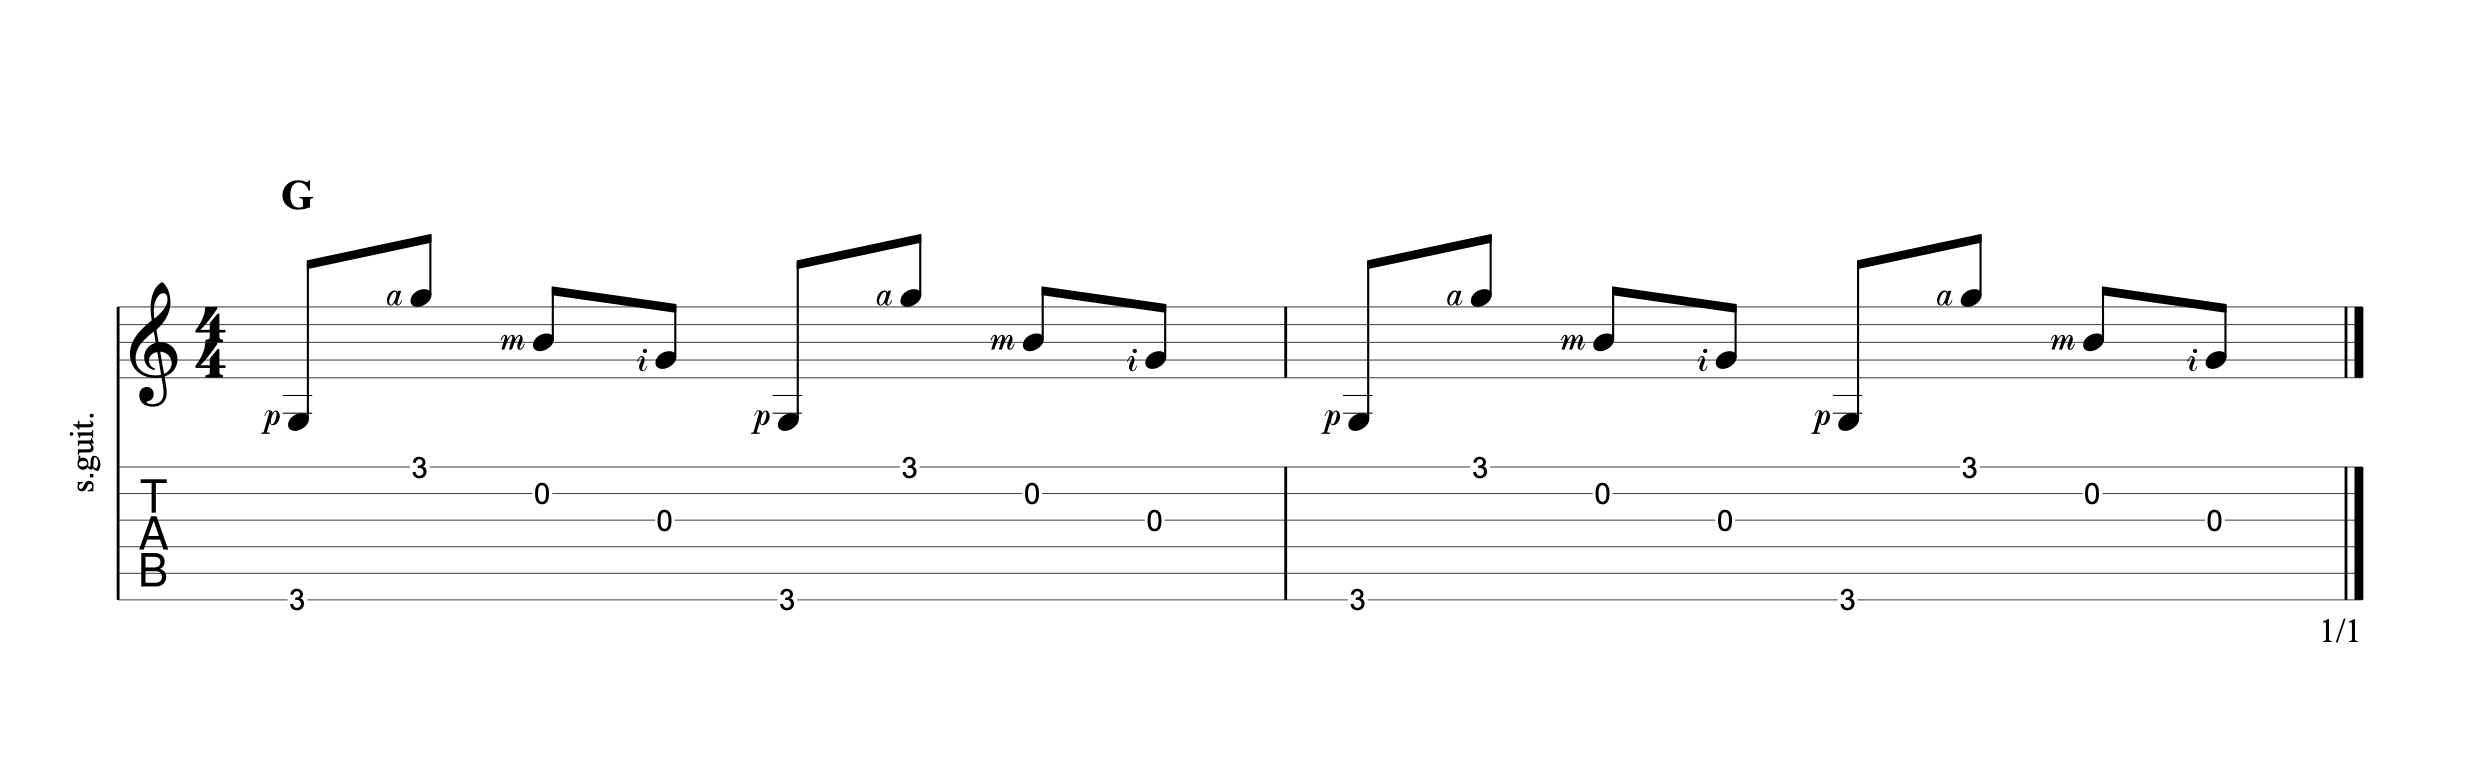 Fingerpicking Chords p6